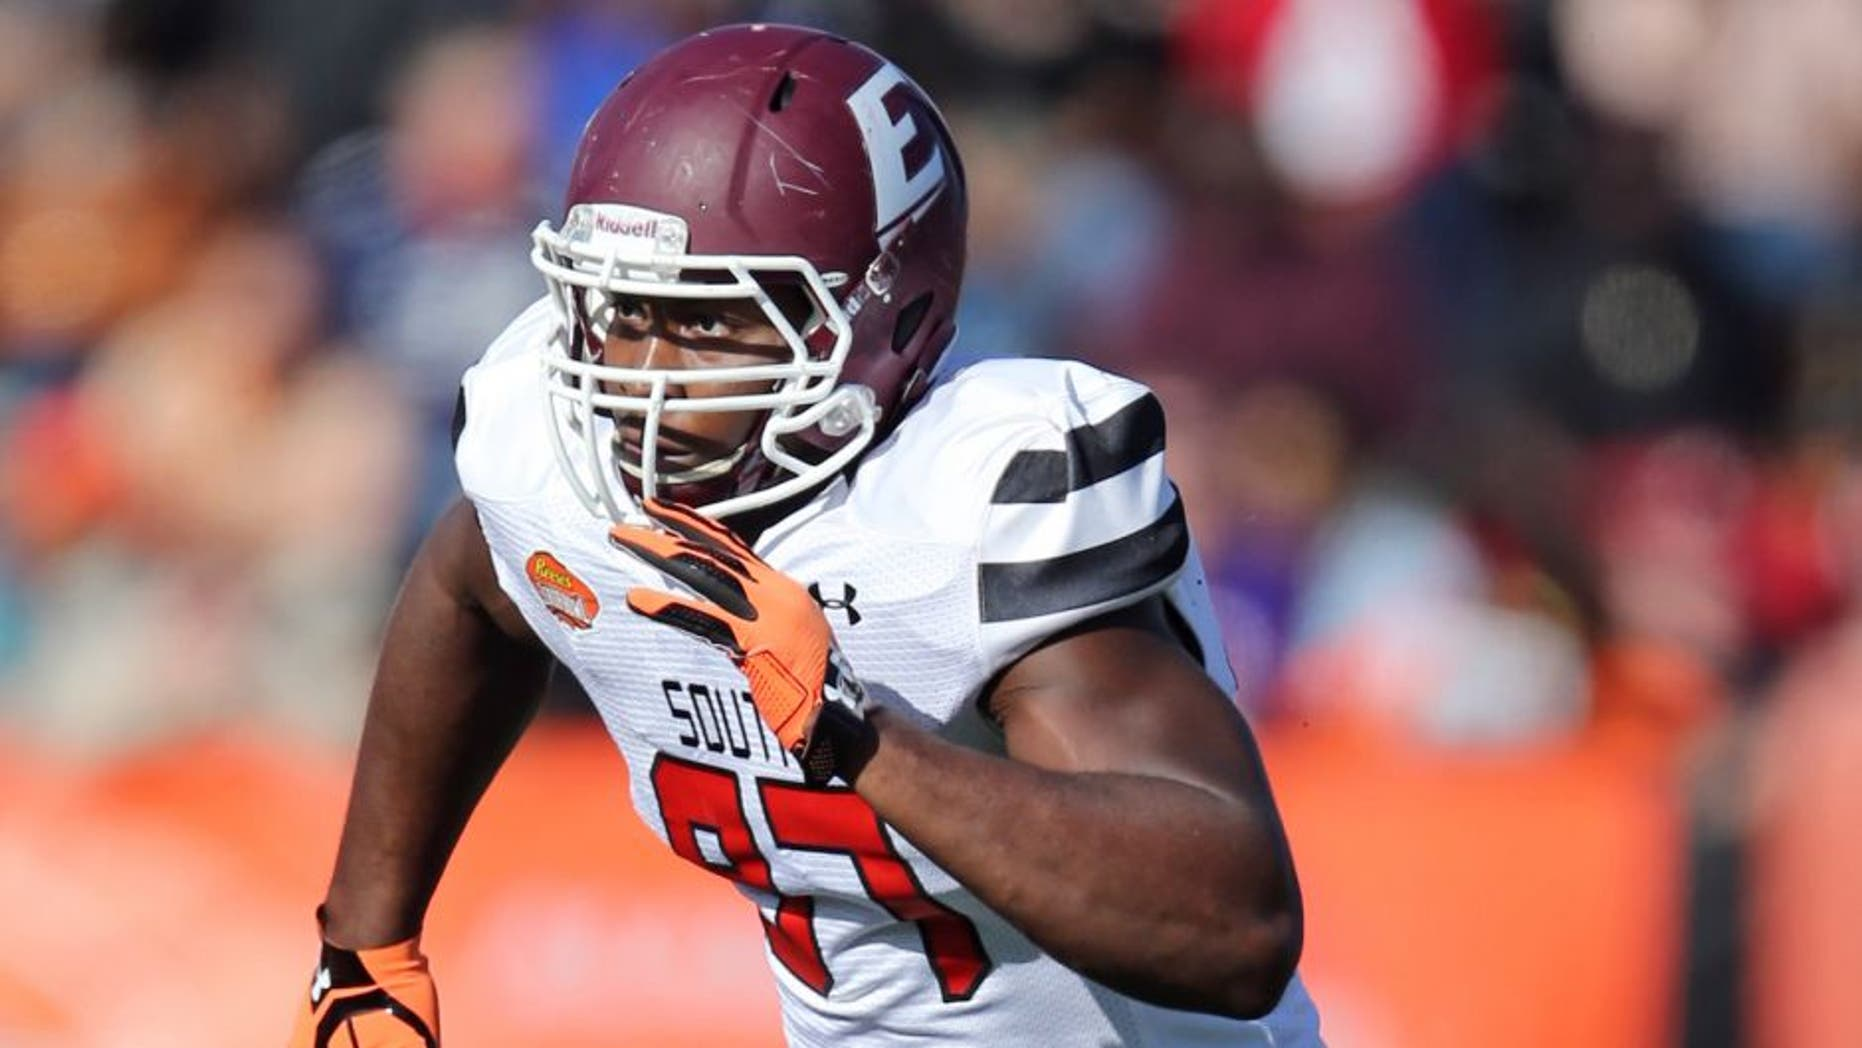 Jan 30, 2016; Mobile, AL, USA; South squad defensive end Noah Spence of Eastern Kentucky (97) in the second quarter of the Senior Bowl at Ladd-Peebles Stadium. Mandatory Credit: Chuck Cook-USA TODAY Sports